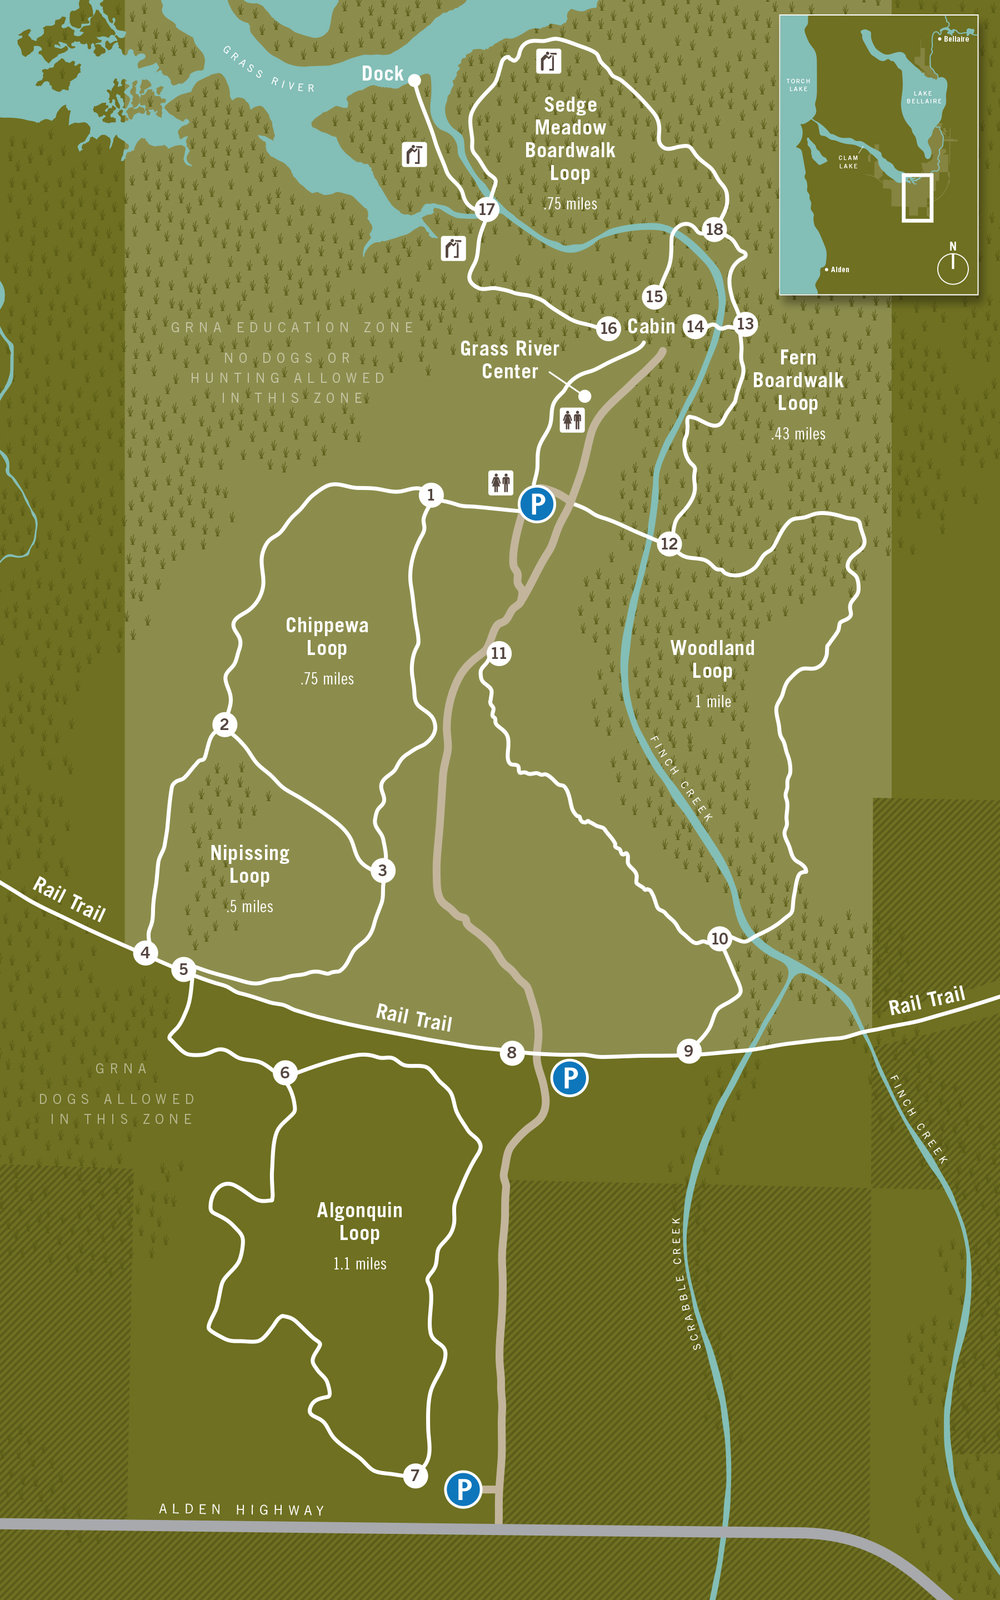 GRASS RIVER NATURAL AREA - TRAIL MAP